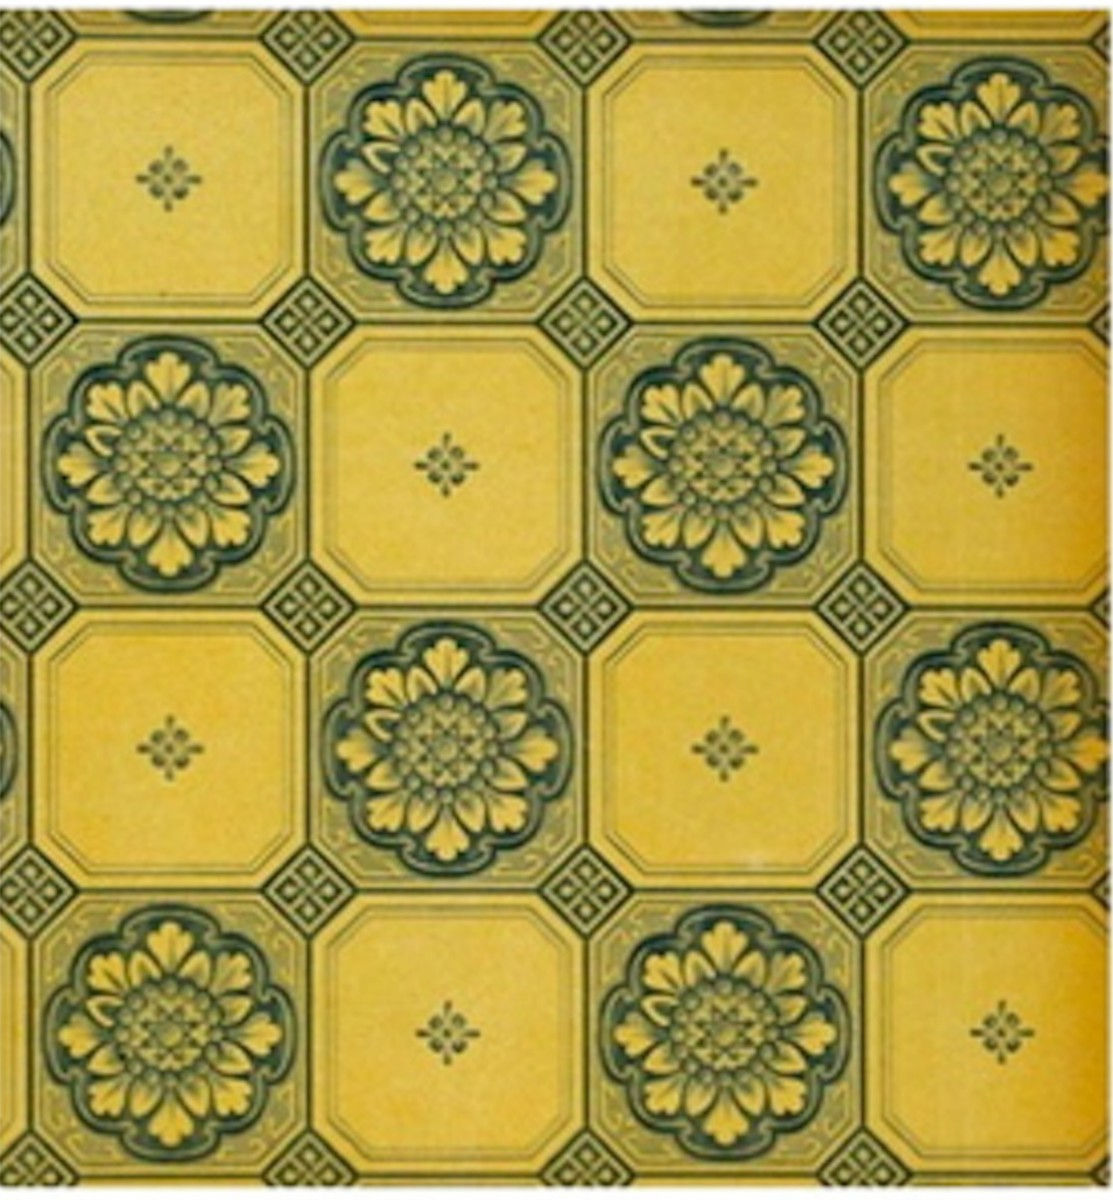 1923 Sanitary Wallpaper by Cole & Sons, England